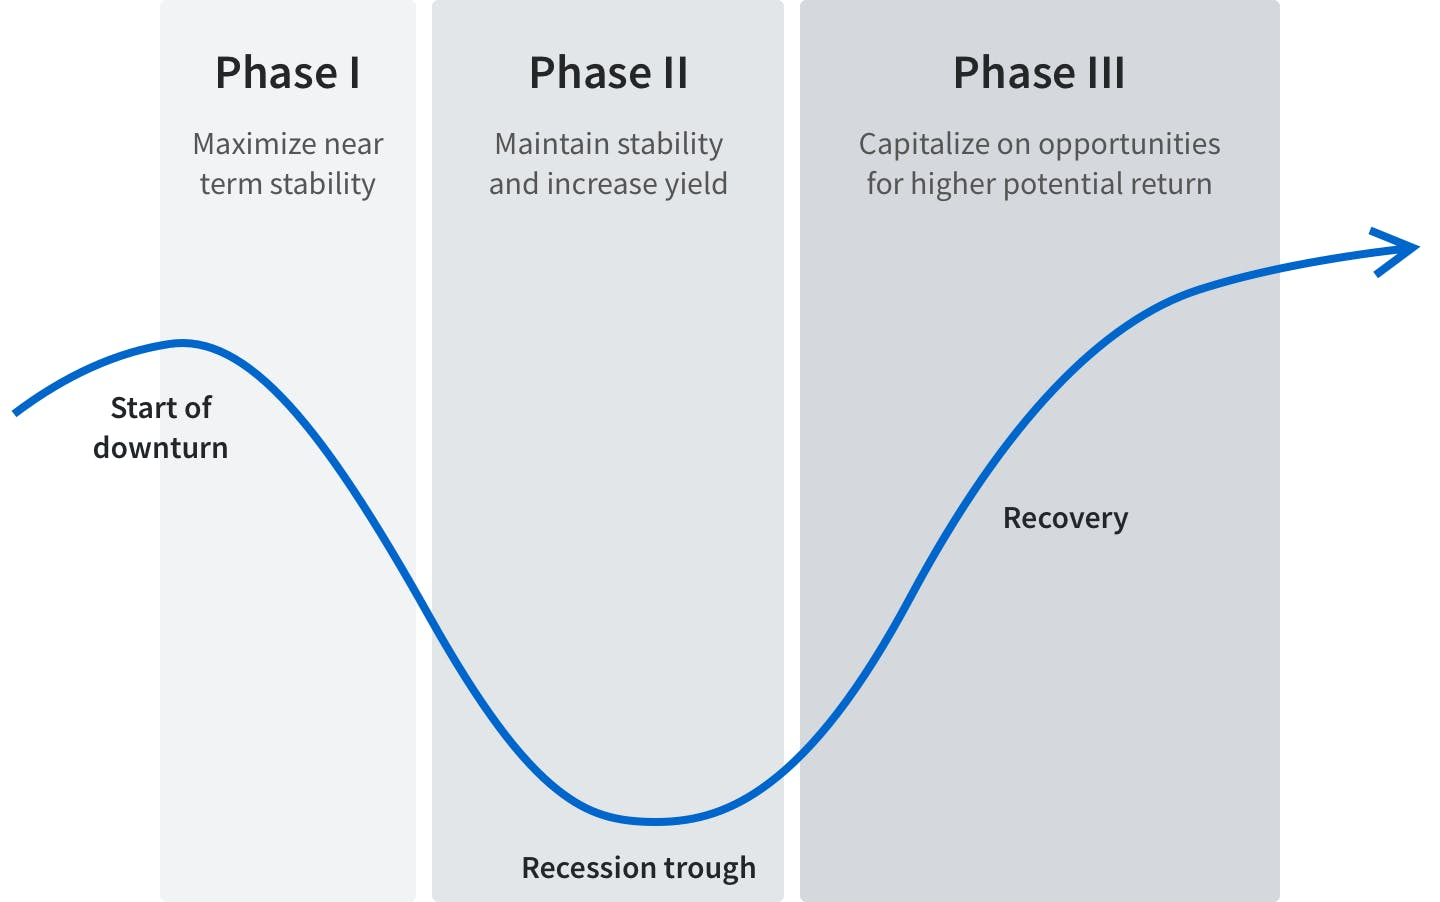 Expected phases of investment strategy